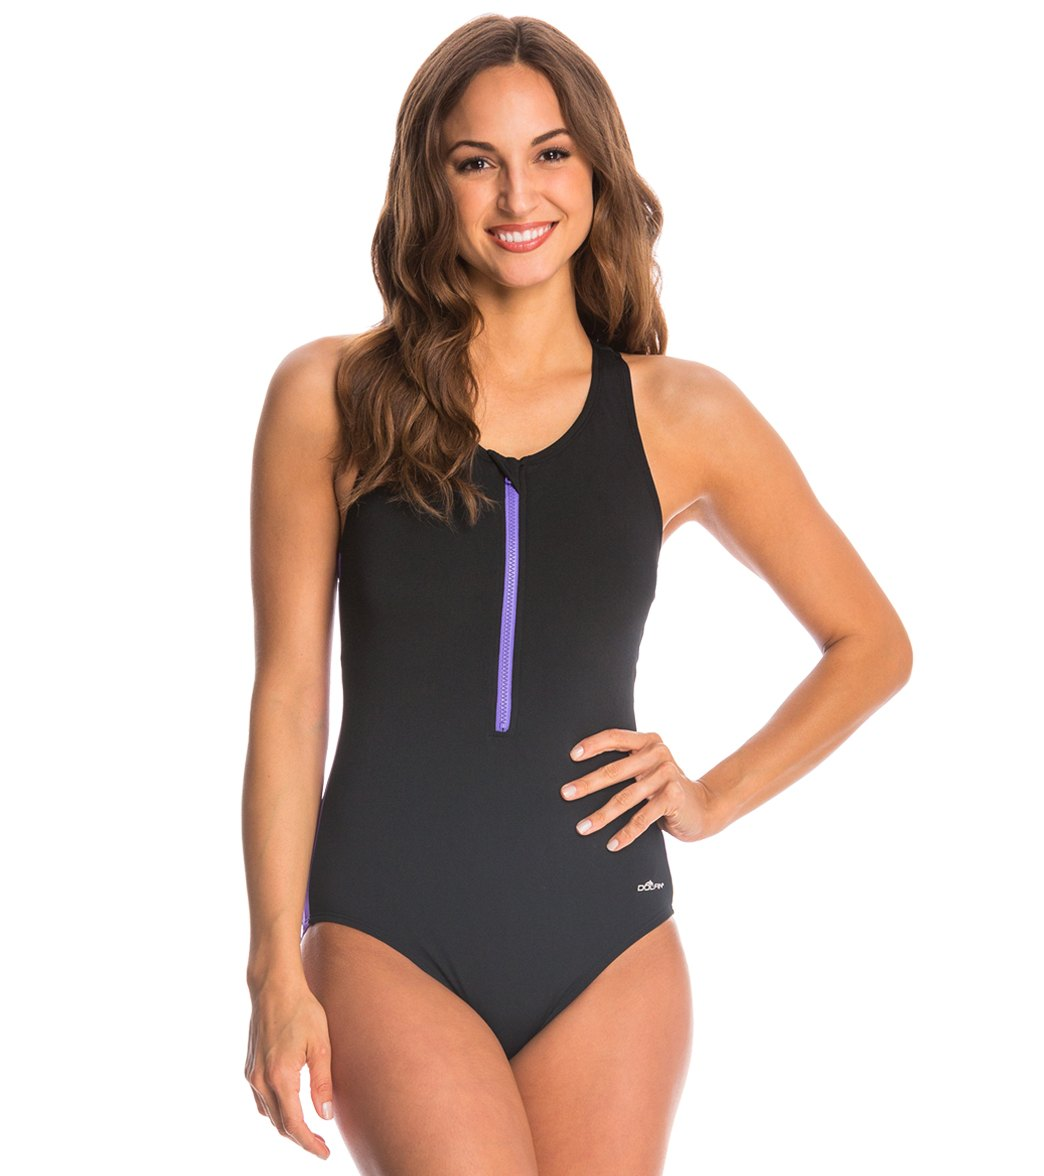 443f512cf1 Dolfin Aquashape Zip-Front Racerback One Piece Swimsuit at SwimOutlet.com -  Free Shipping